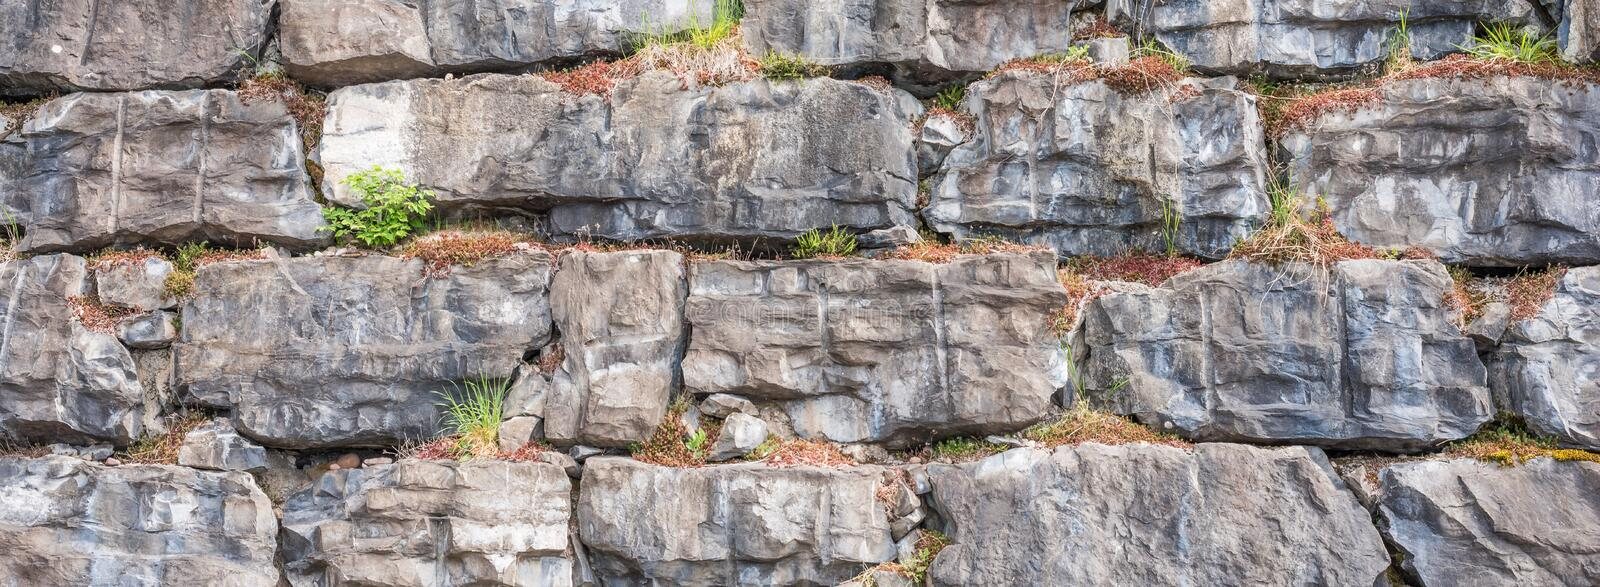 Stones in the wall royalty free stock images